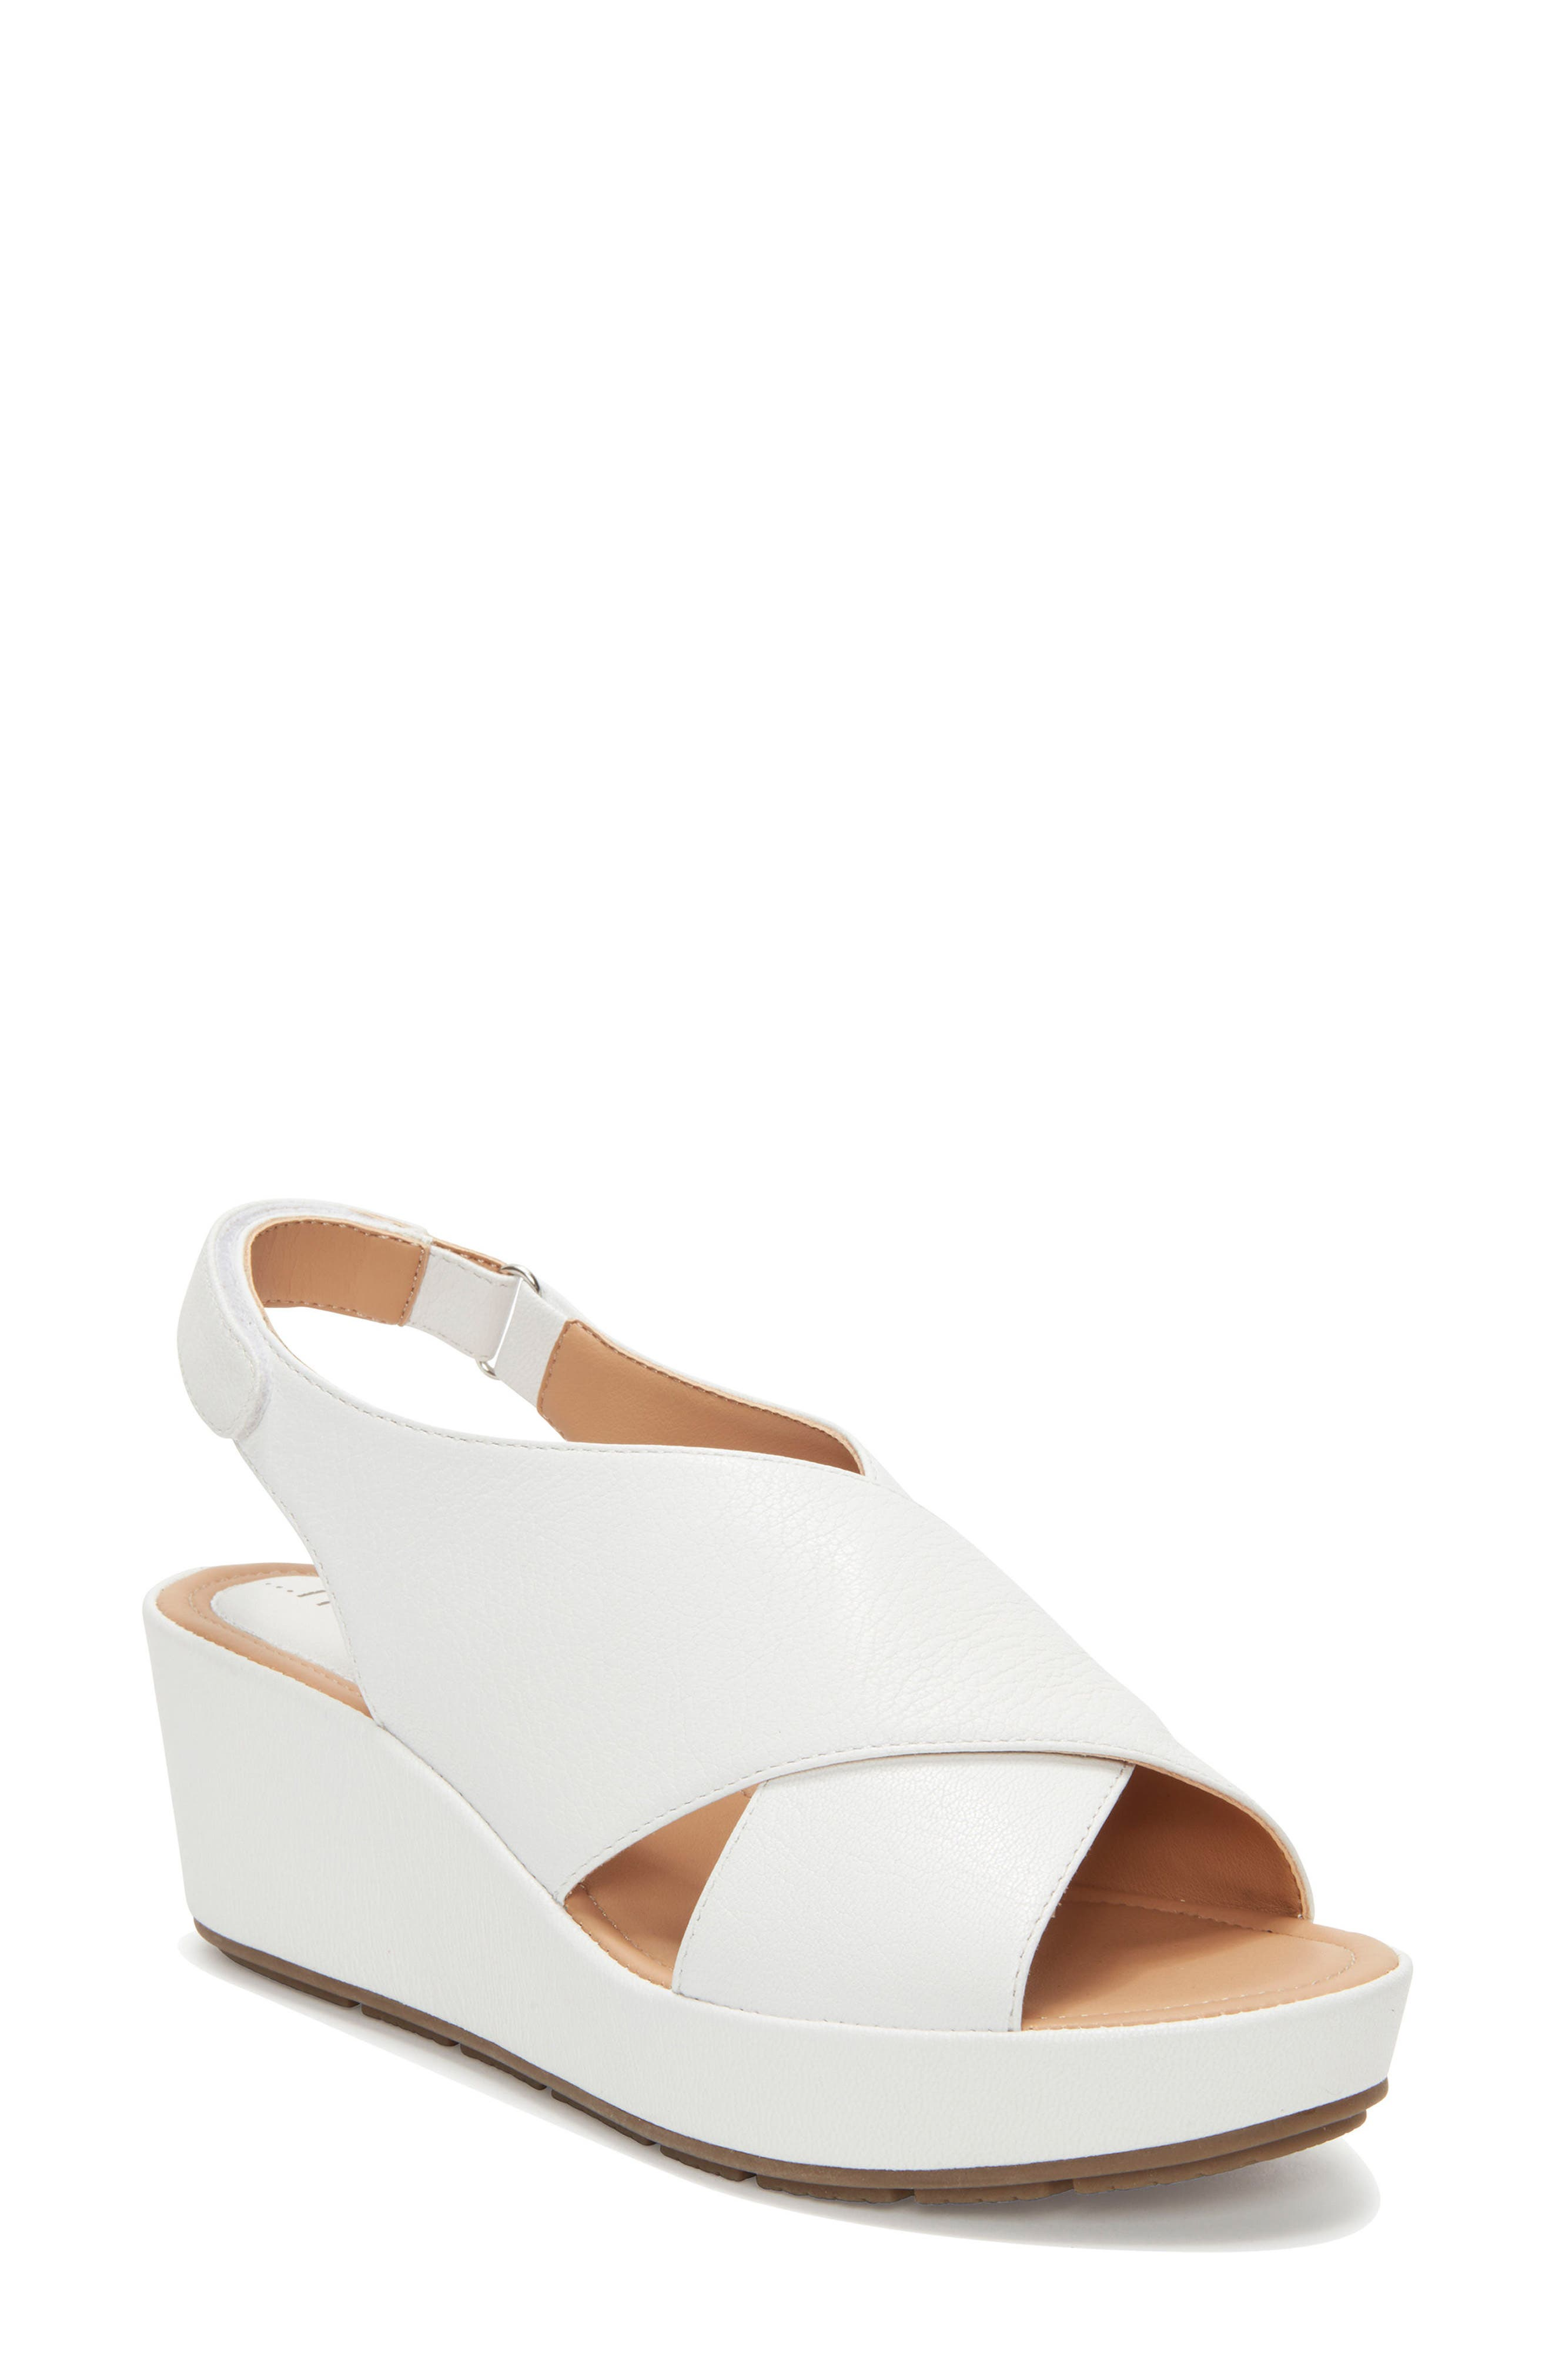 Arena Wedge Sandal,                             Main thumbnail 1, color,                             White Leather